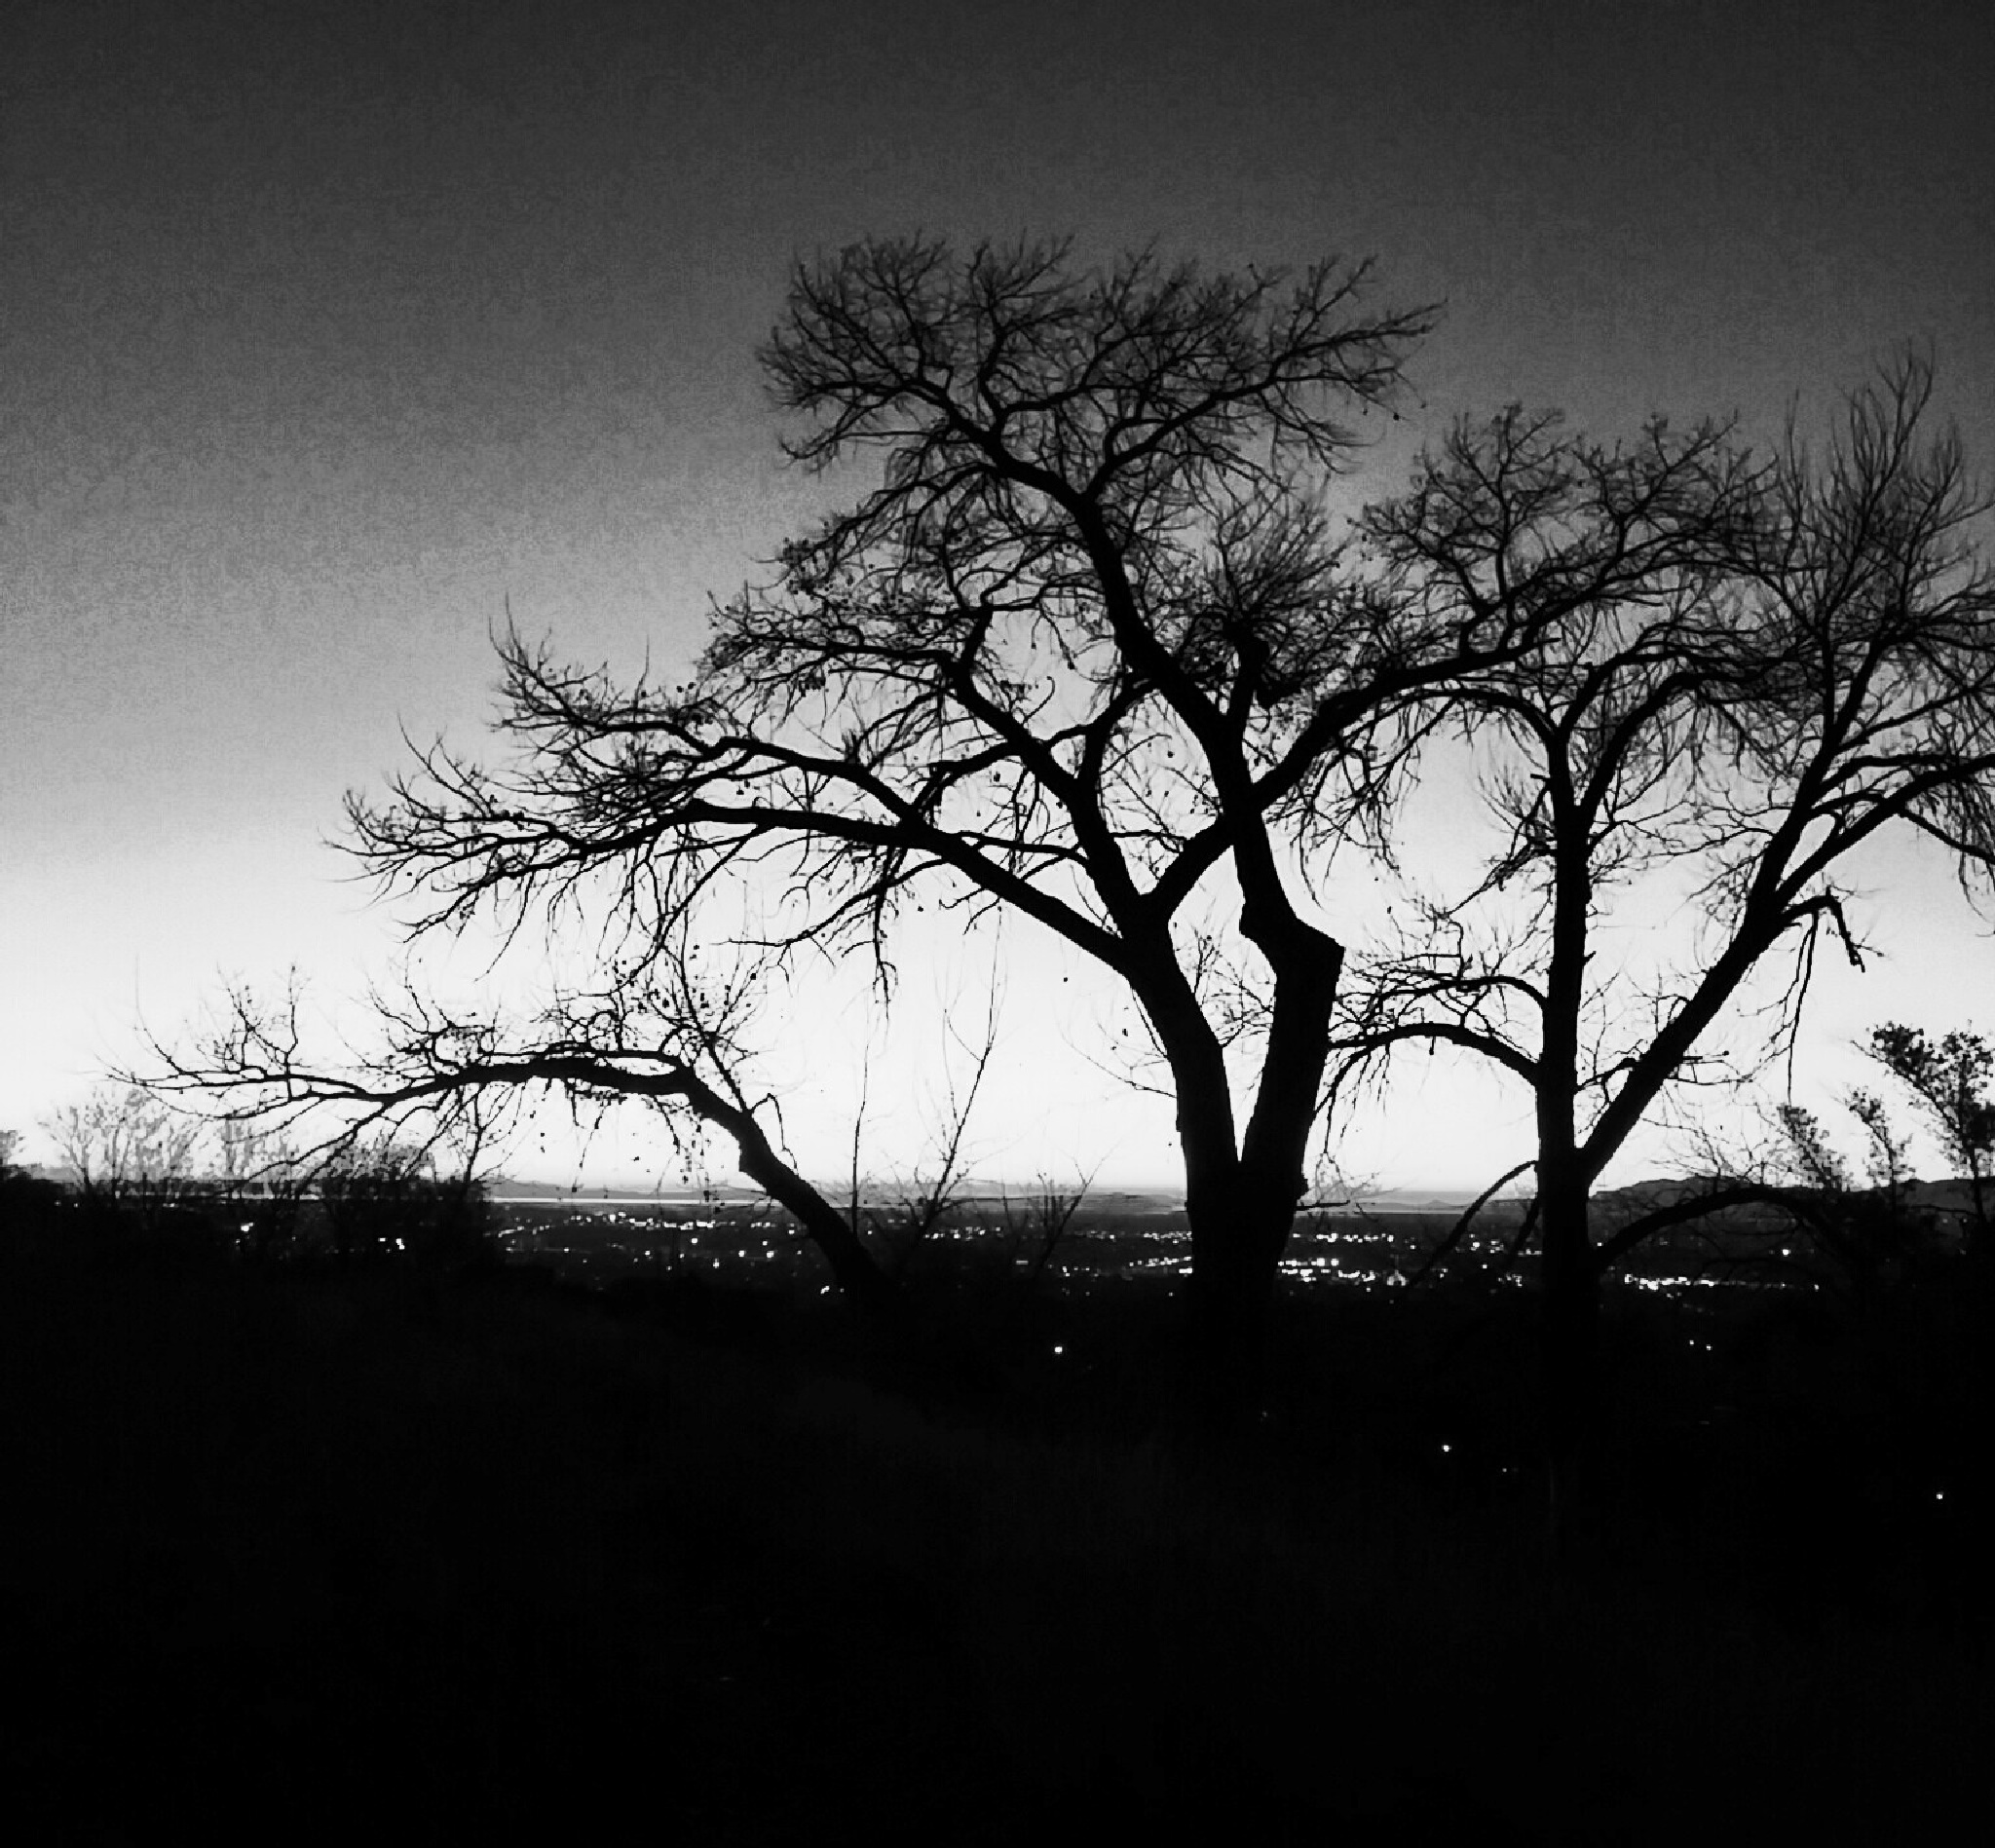 Tree in the sunset by Jim Beitz